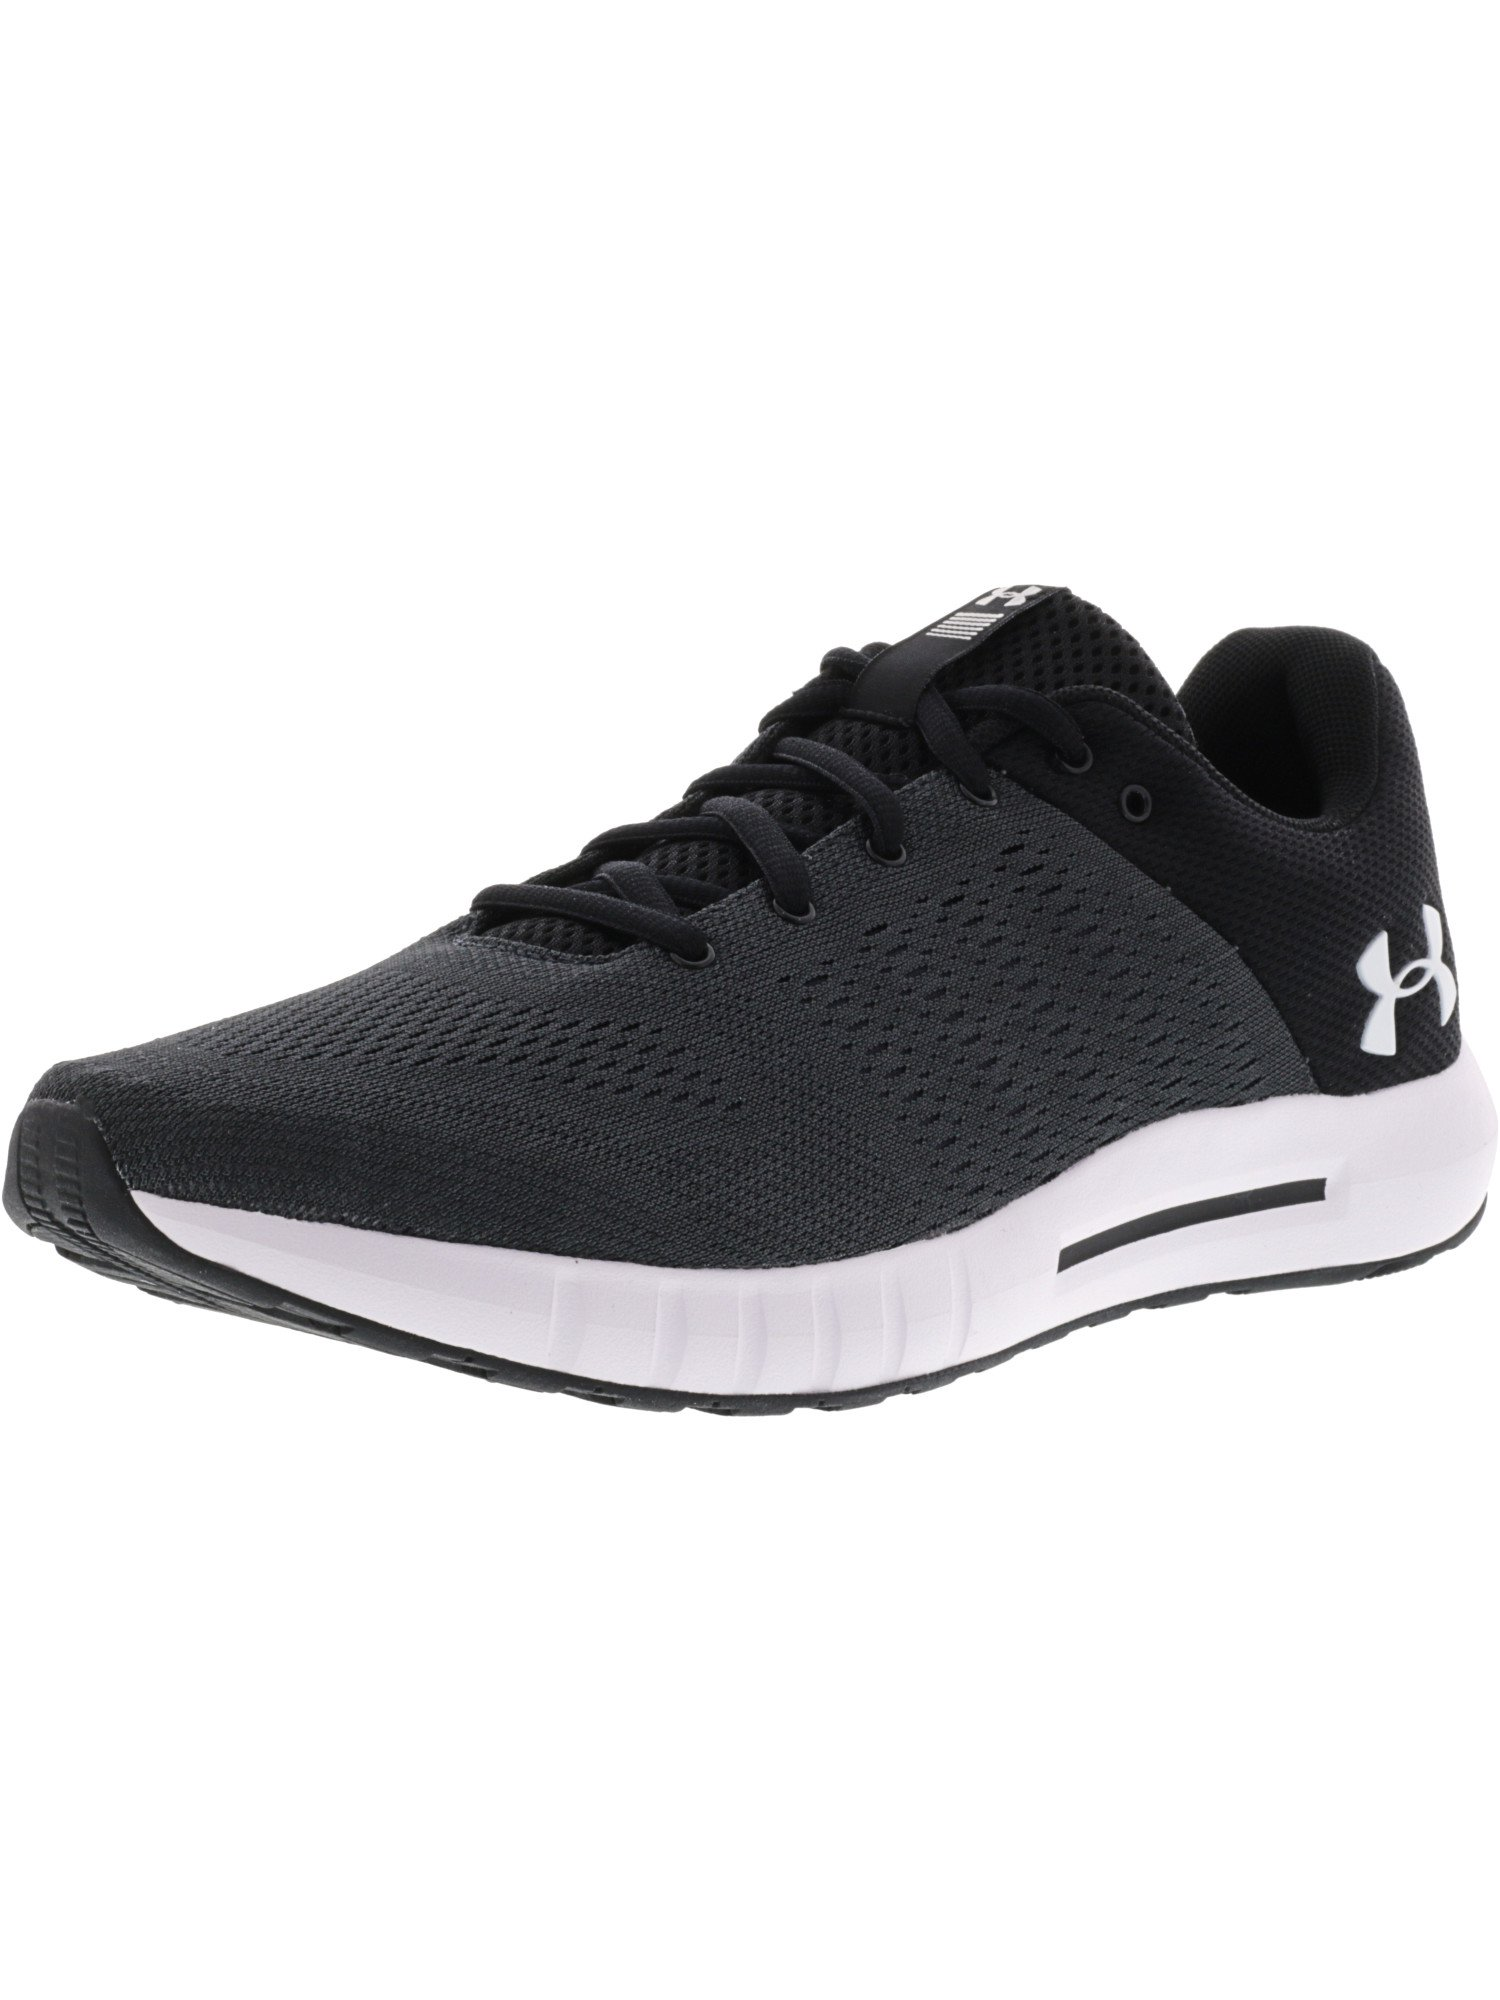 Under Armour Men/'s Micro G Pursuit Running Shoes Anthracite//Black//White US Sizes